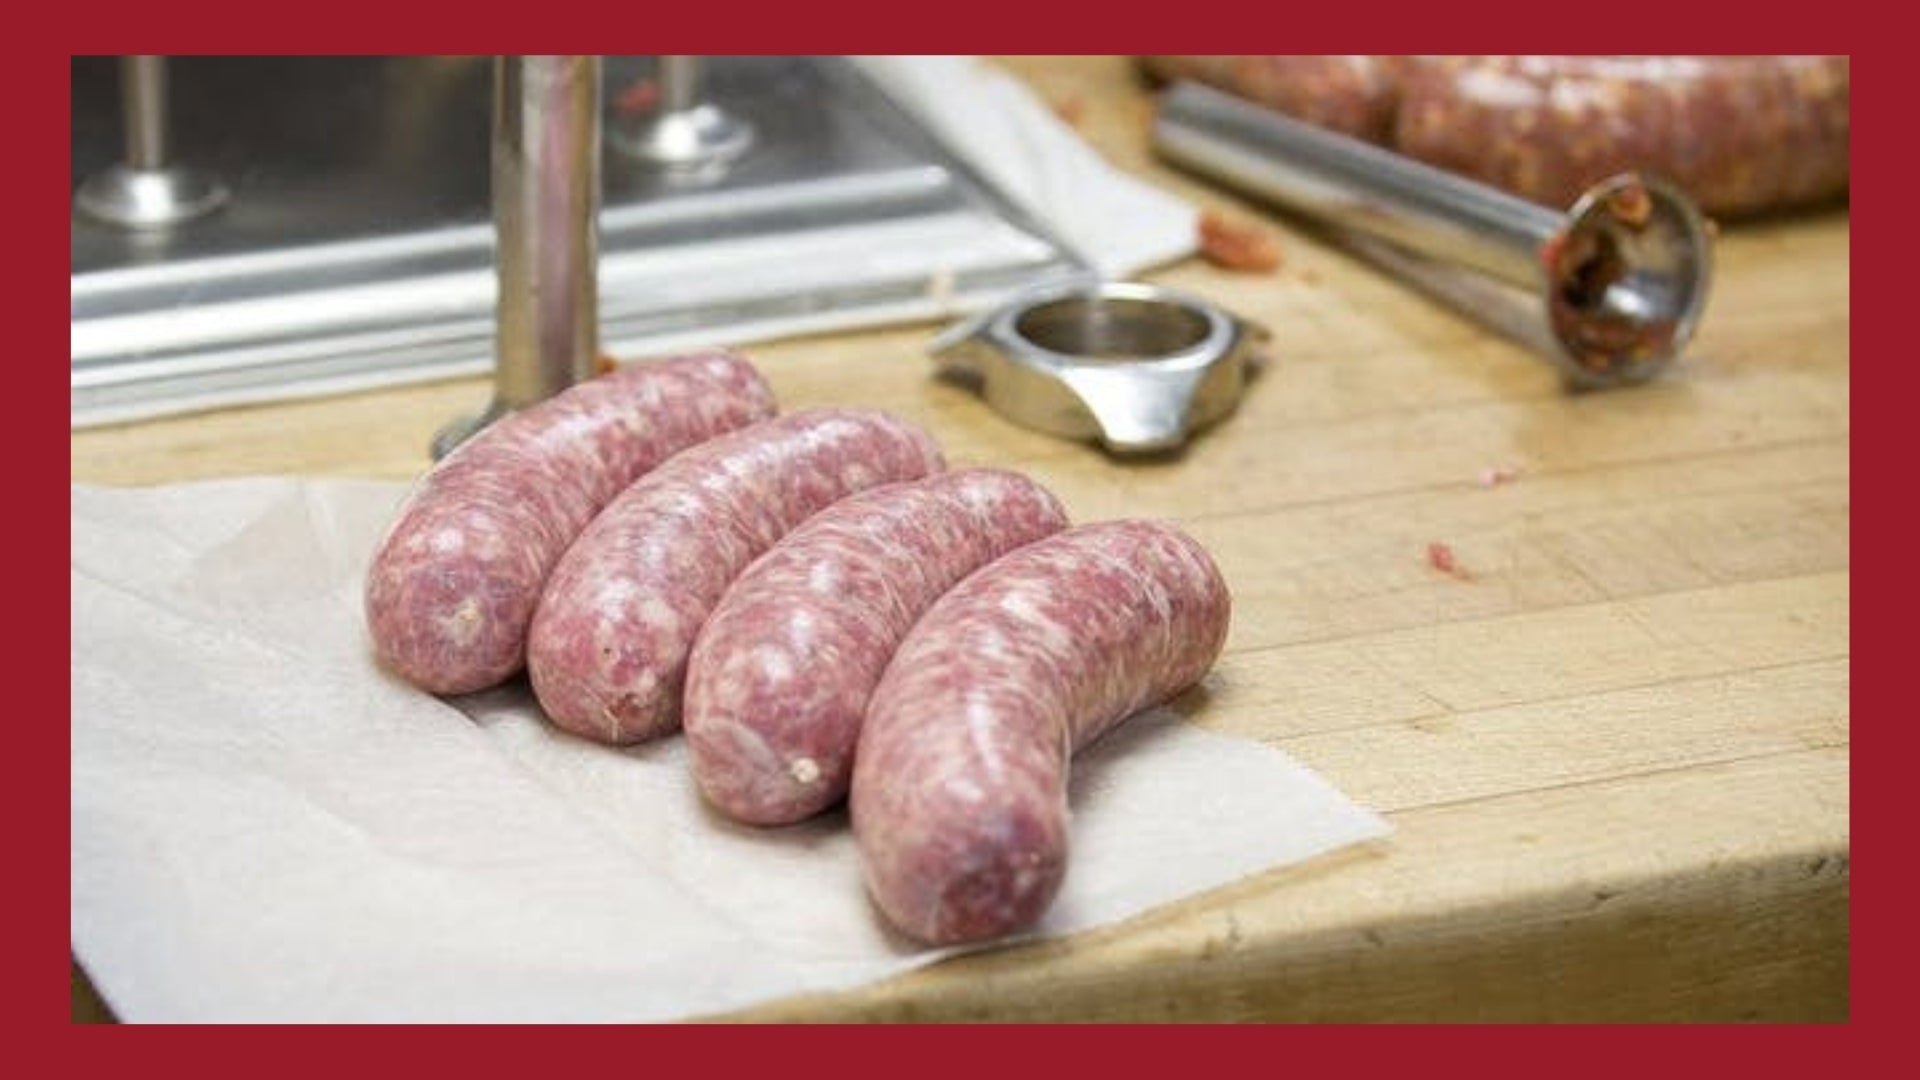 Fresh bratwursts on a butchers table with sausage stuffing equipment in the background.